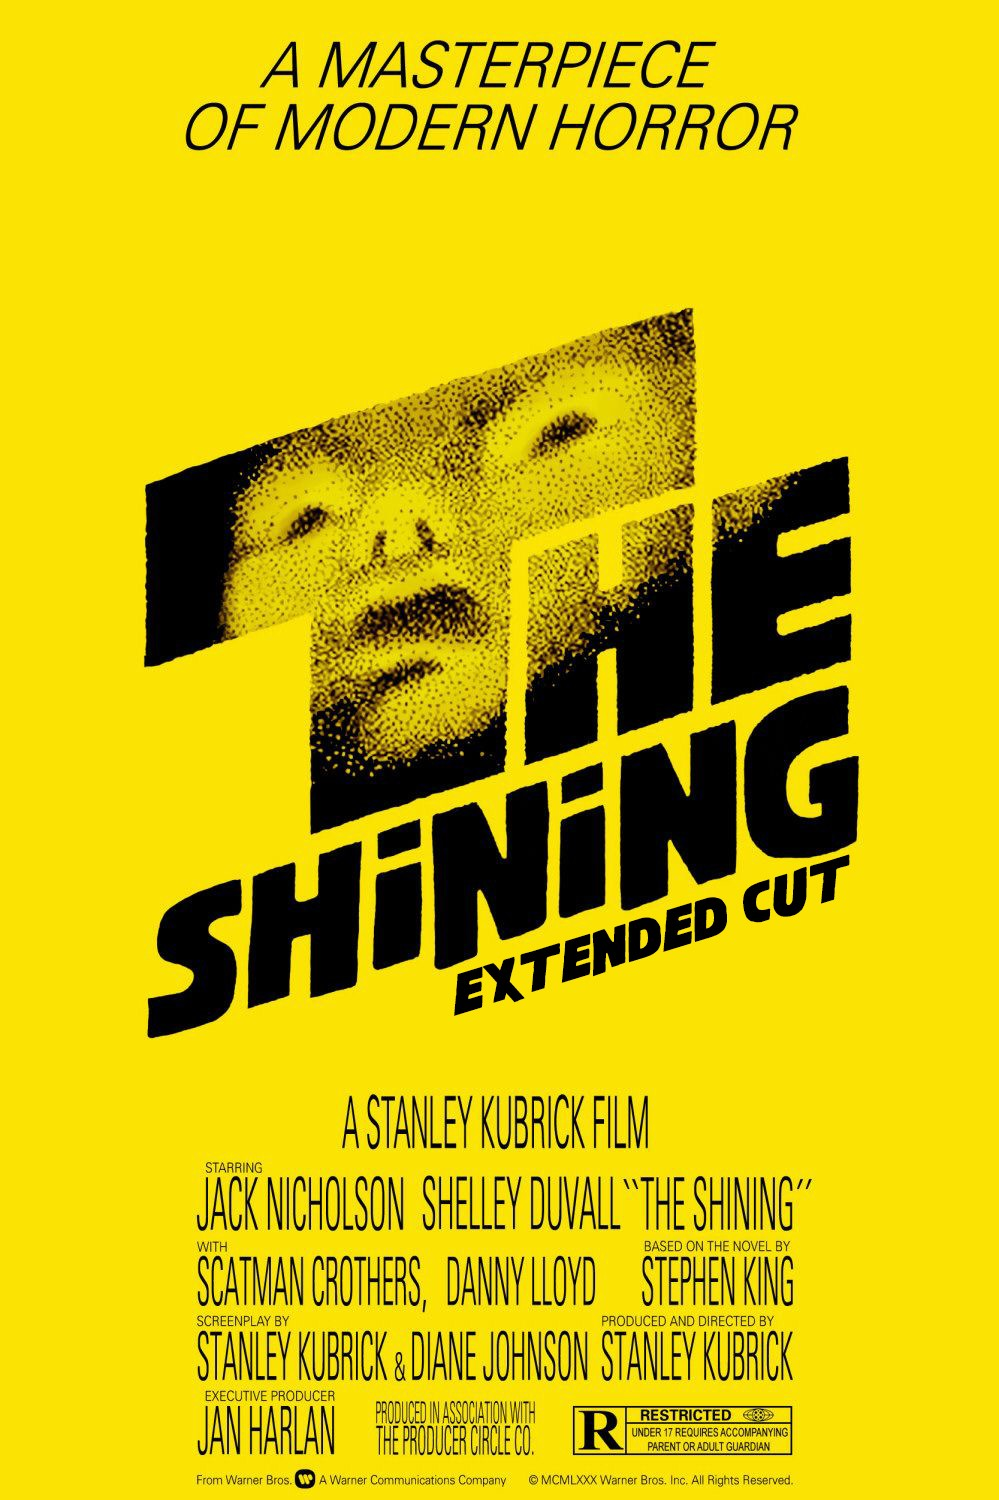 THE SHINING - EXTENDED CUT